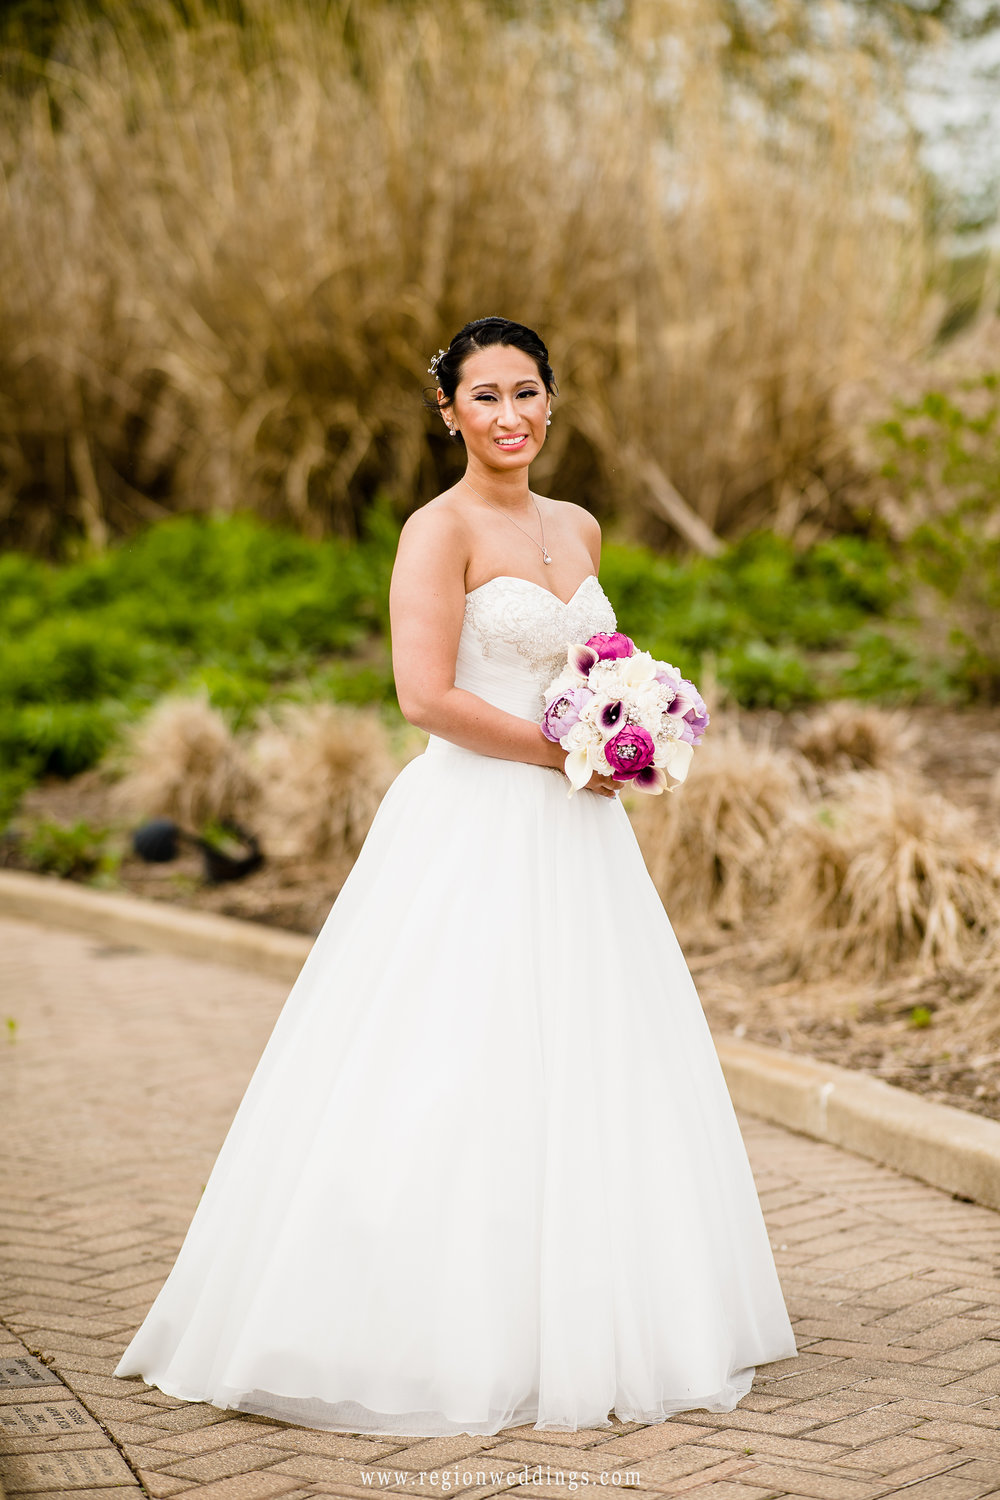 Portrait of the bride in the Sand Creek garden.